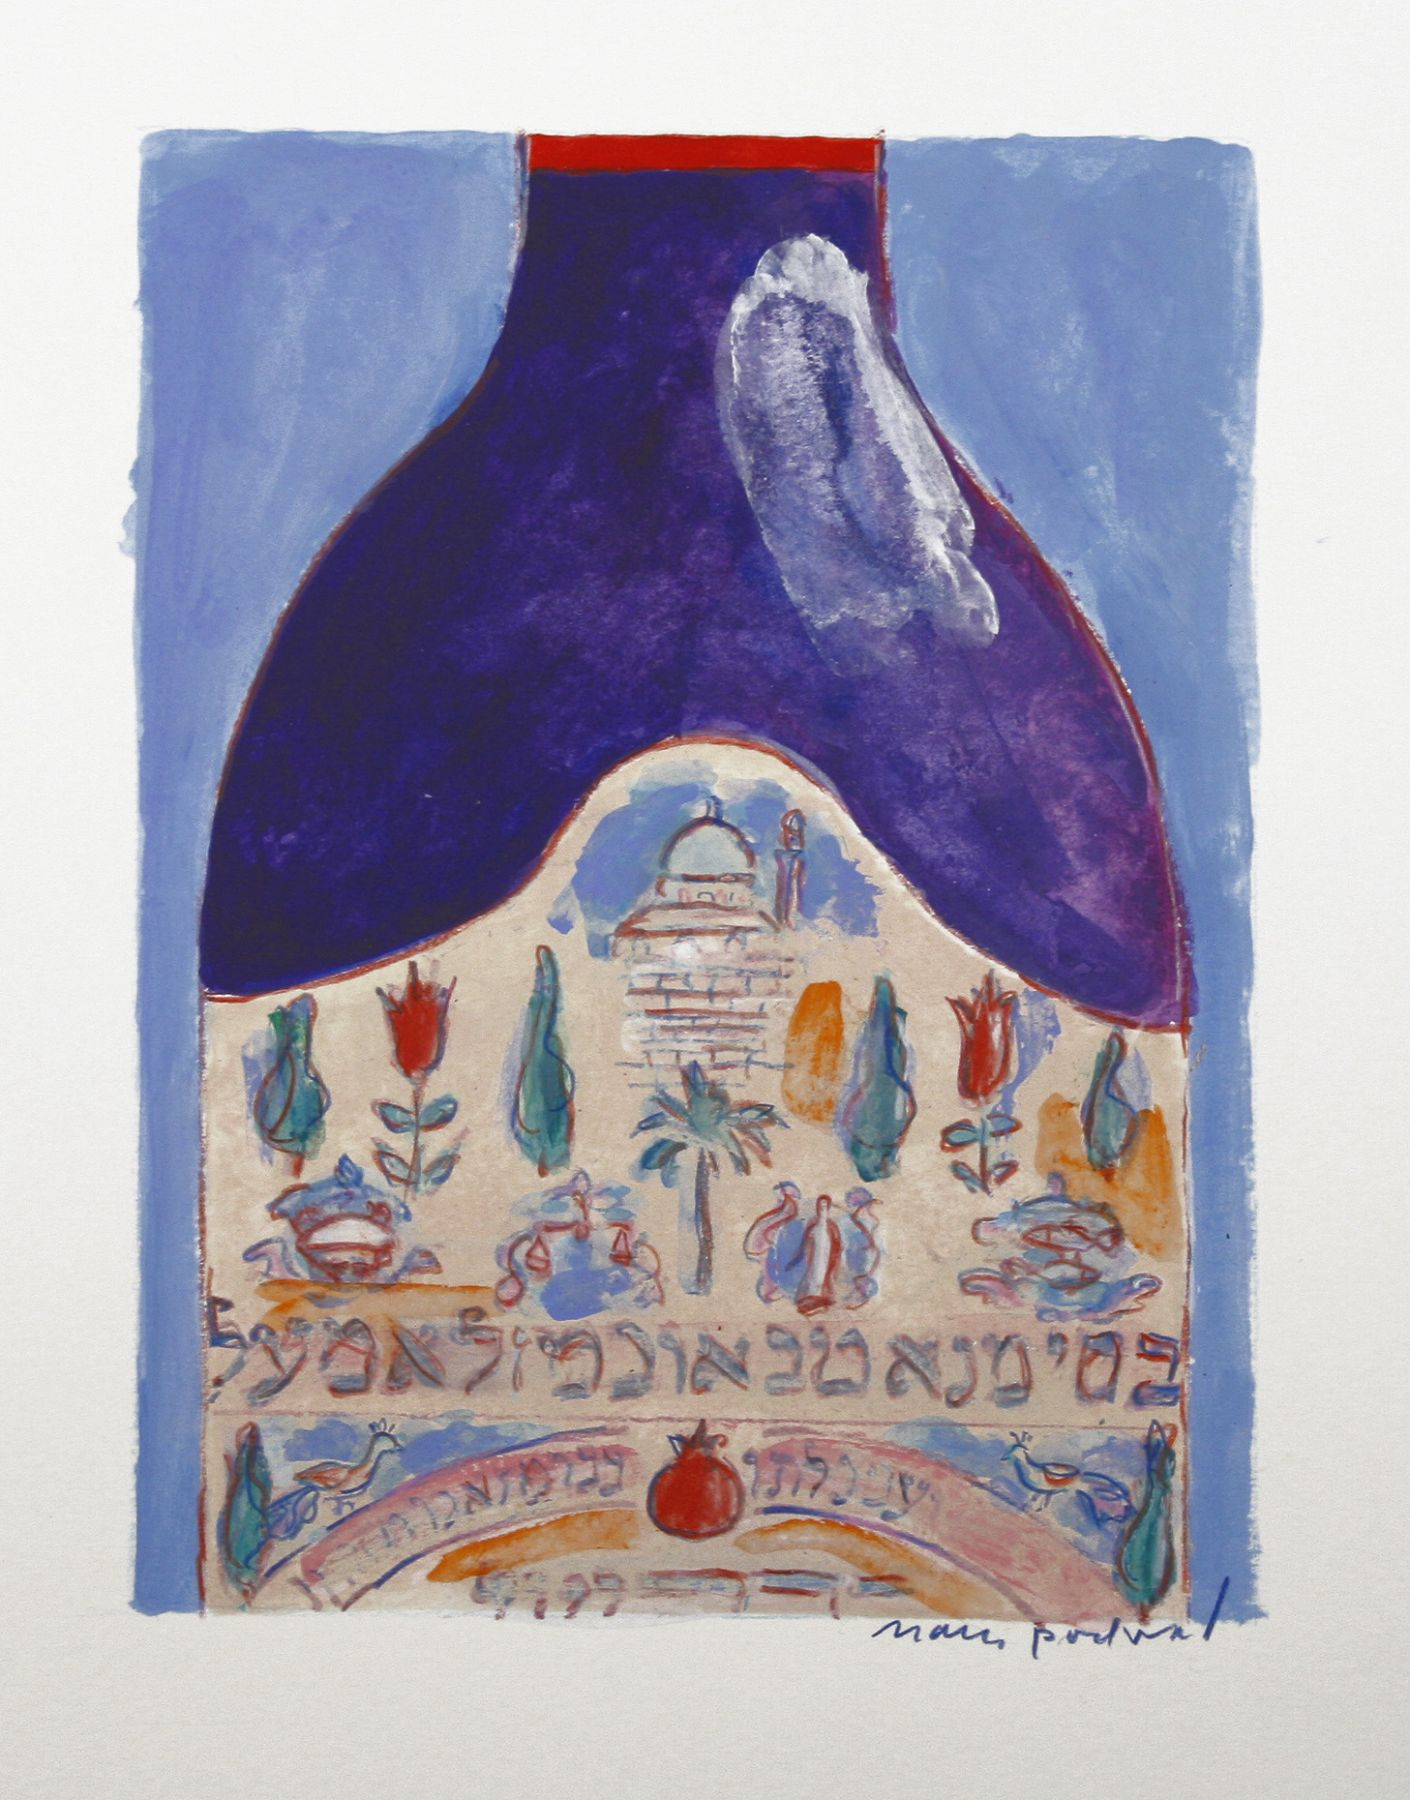 Mark Podwal, Lag B'Omer (SOLD), 2008, acrylic, gouache and colored pencil on paper, 9 x 6 3/4 inches